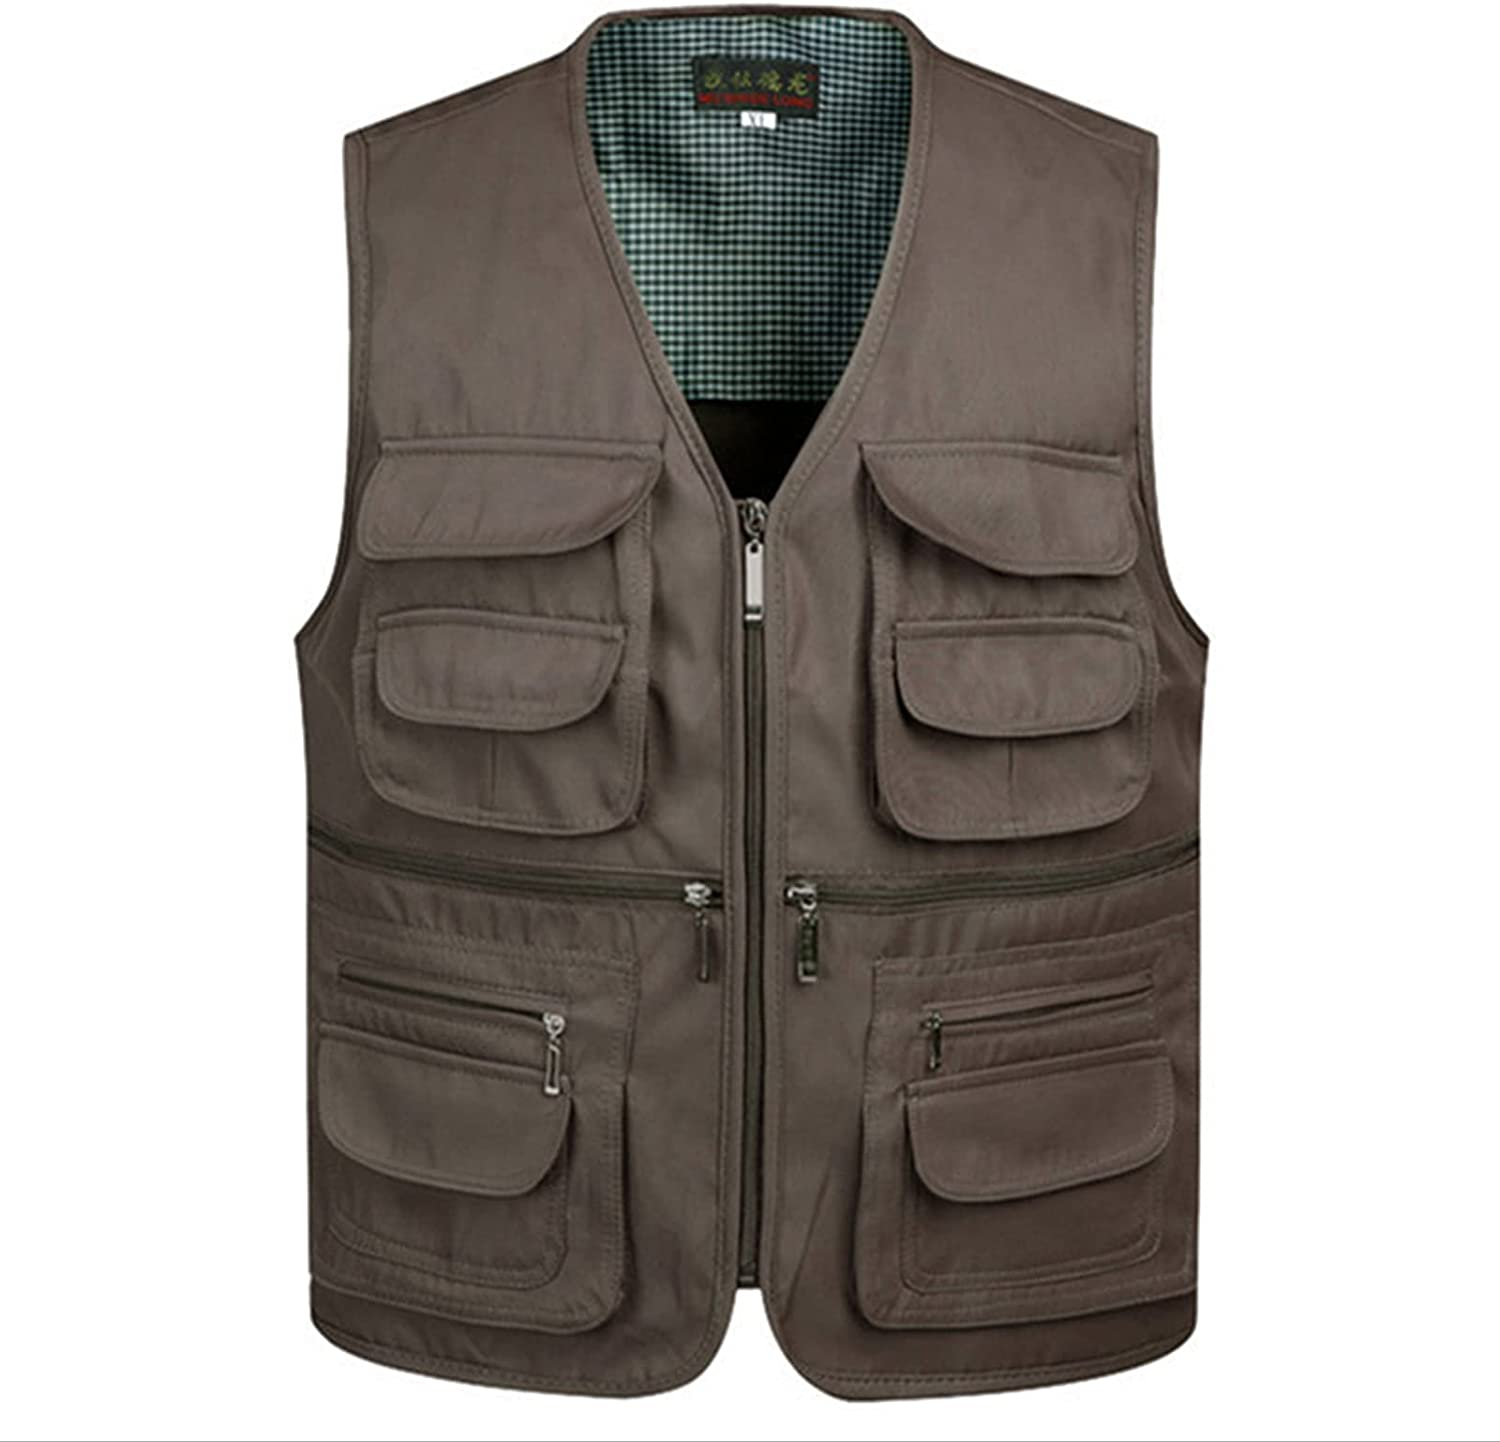 Fishing Mens Vest Shipping included Tactical Golf New products, world's highest quality popular! Runing Safari Hunting with Hidde